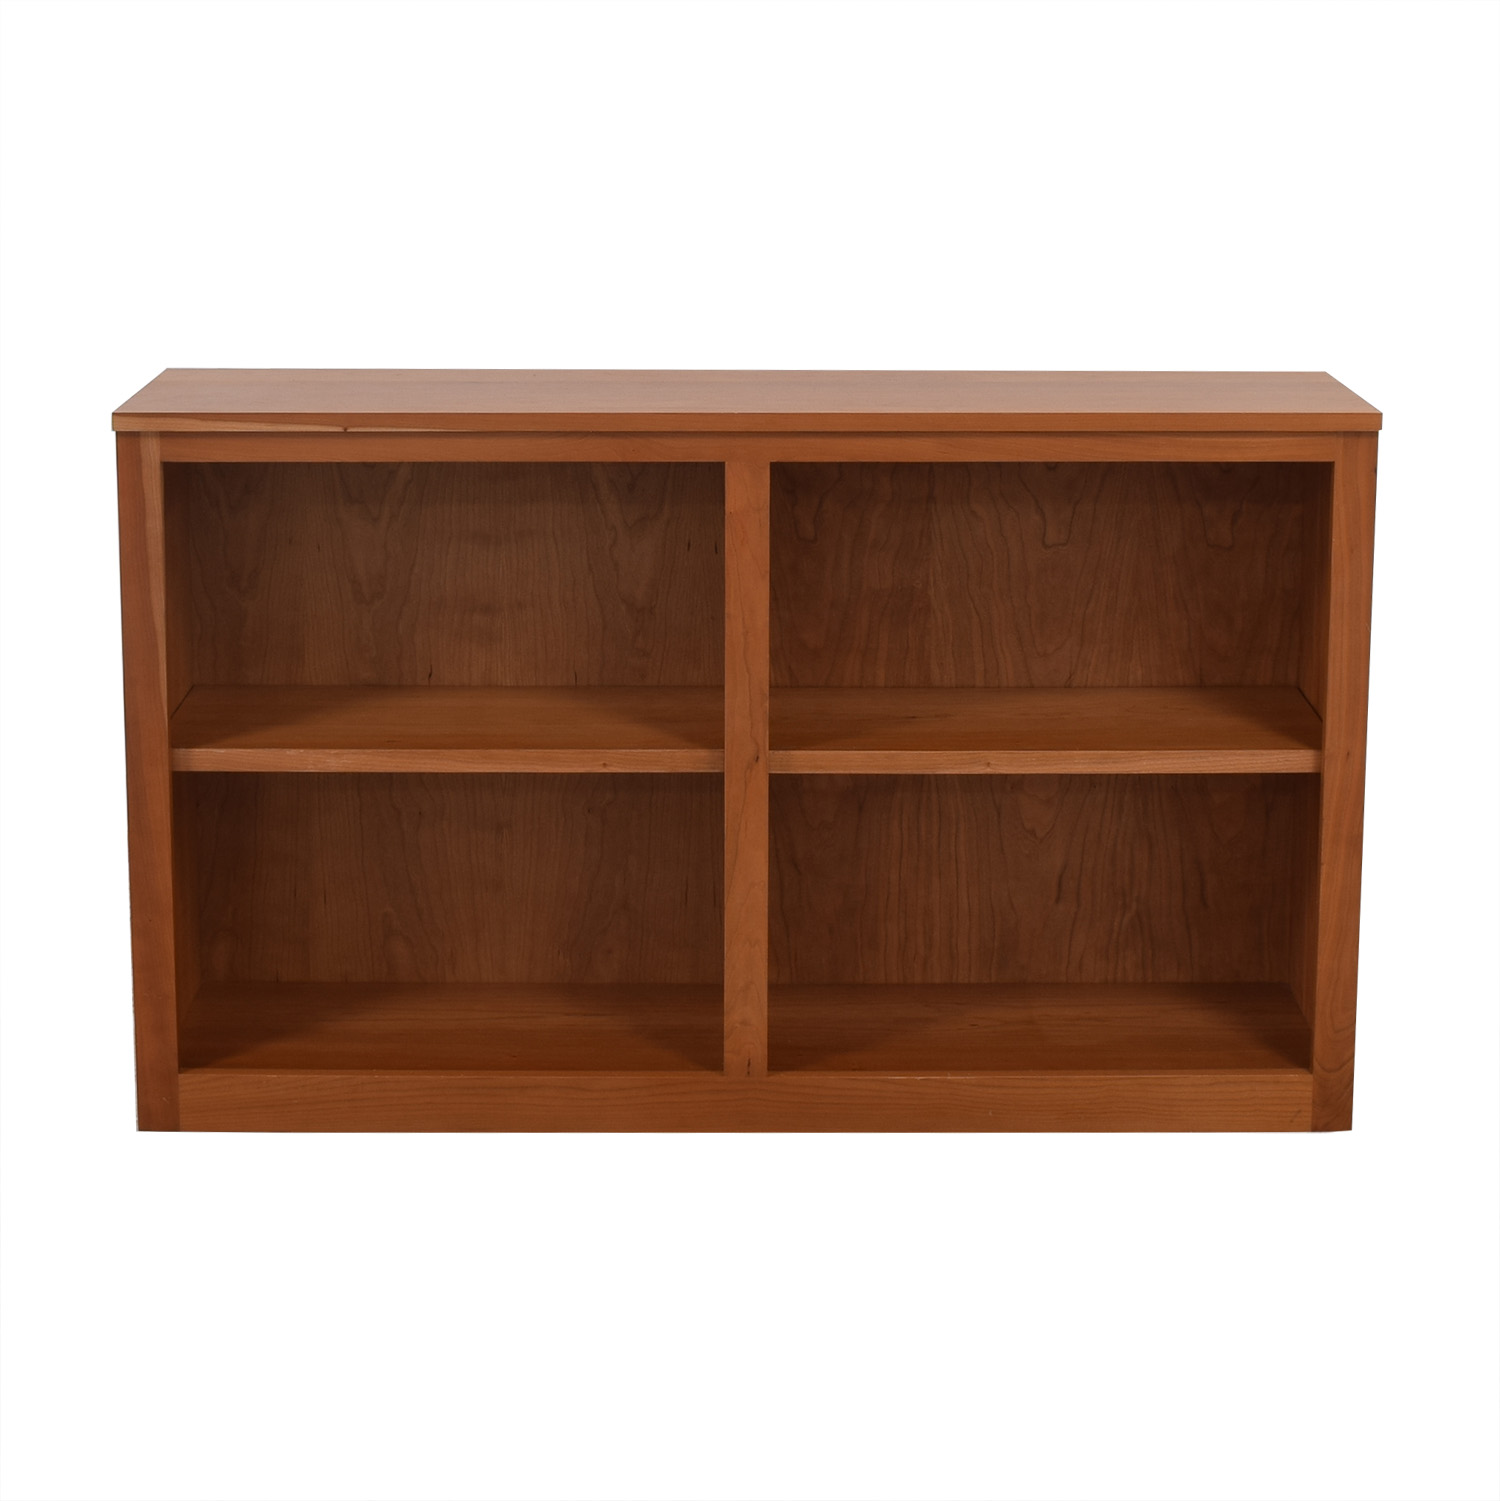 Room & Board Room & Board Woodwind Custom Bookshelves ct